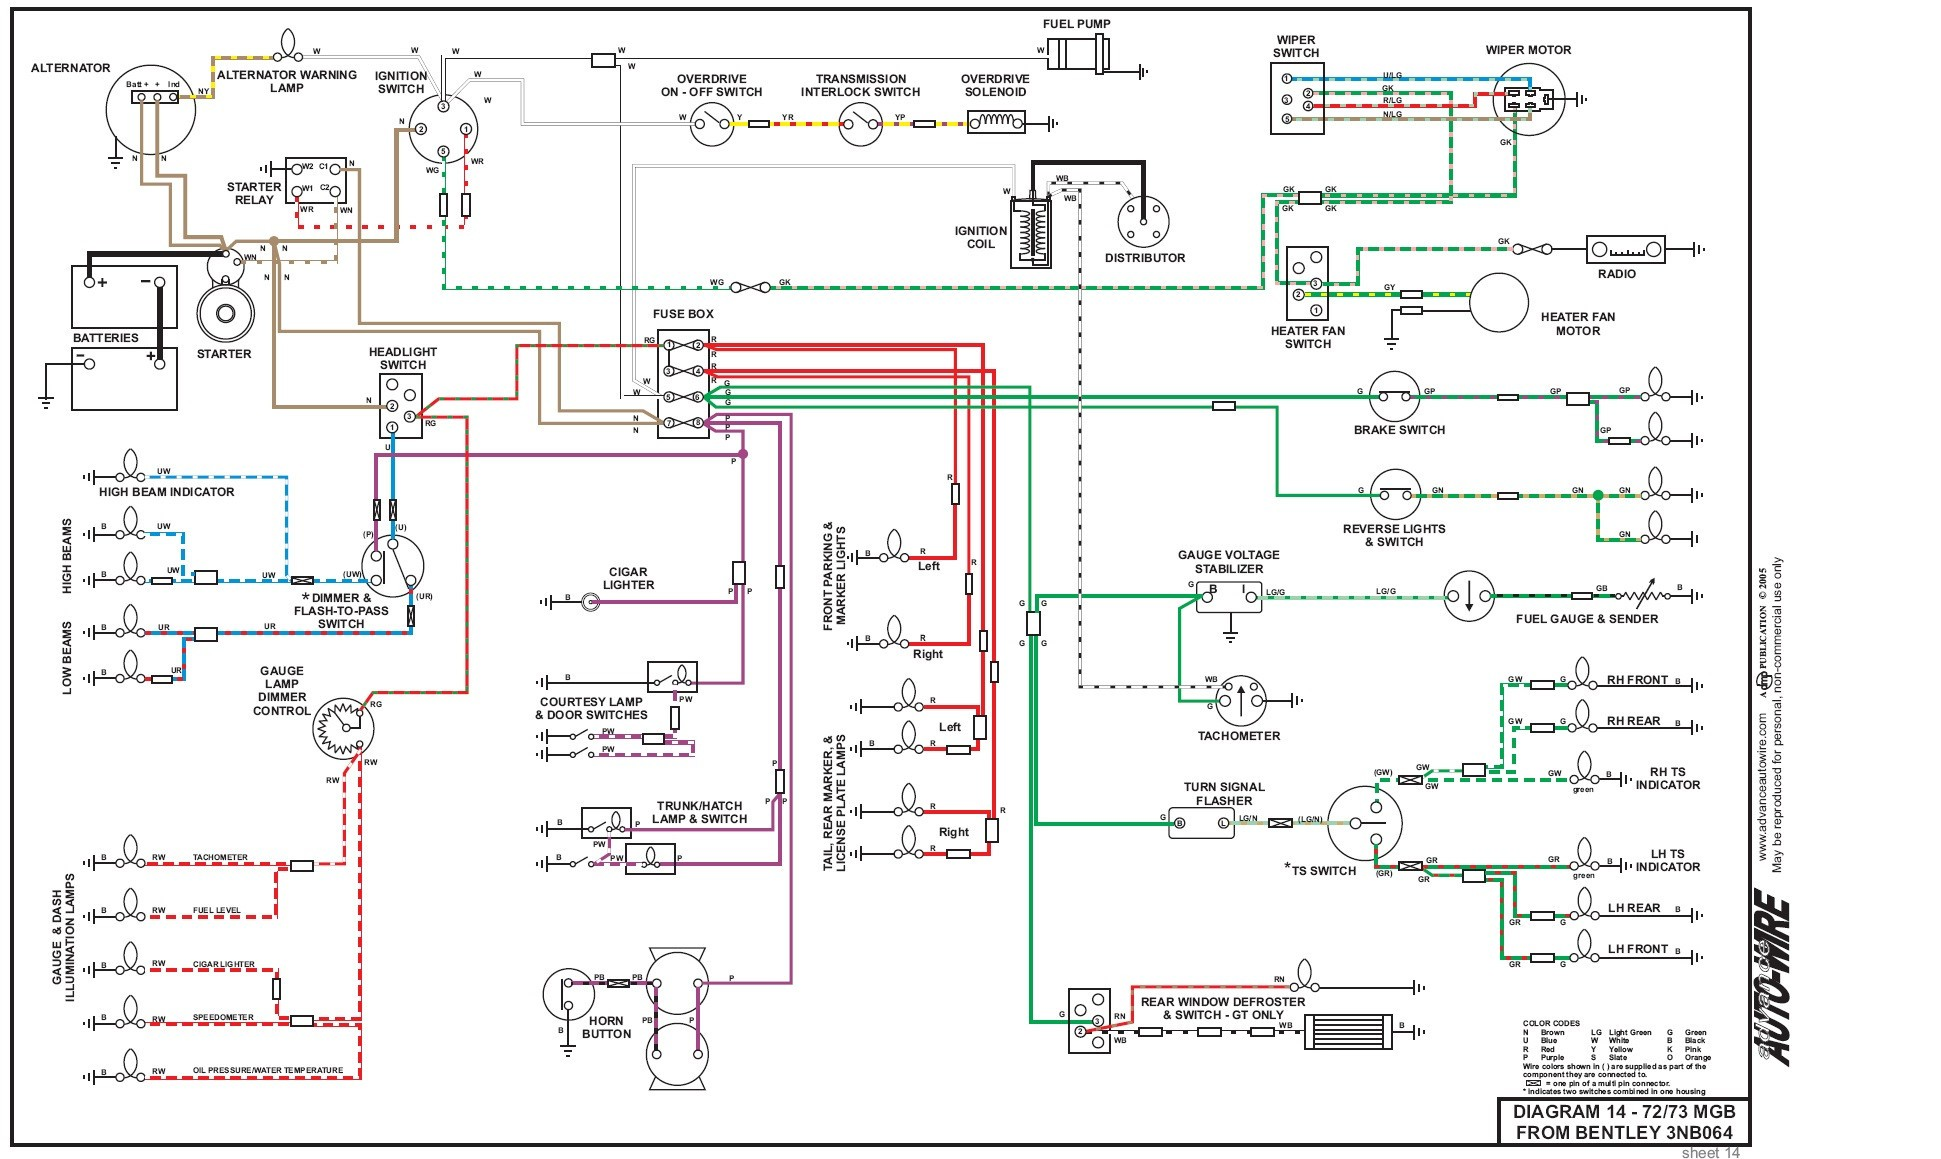 hight resolution of 1978 mg wiring diagram diagram data schemawith 1977 mgb wiring diagram on 1978 mgb wiring diagram